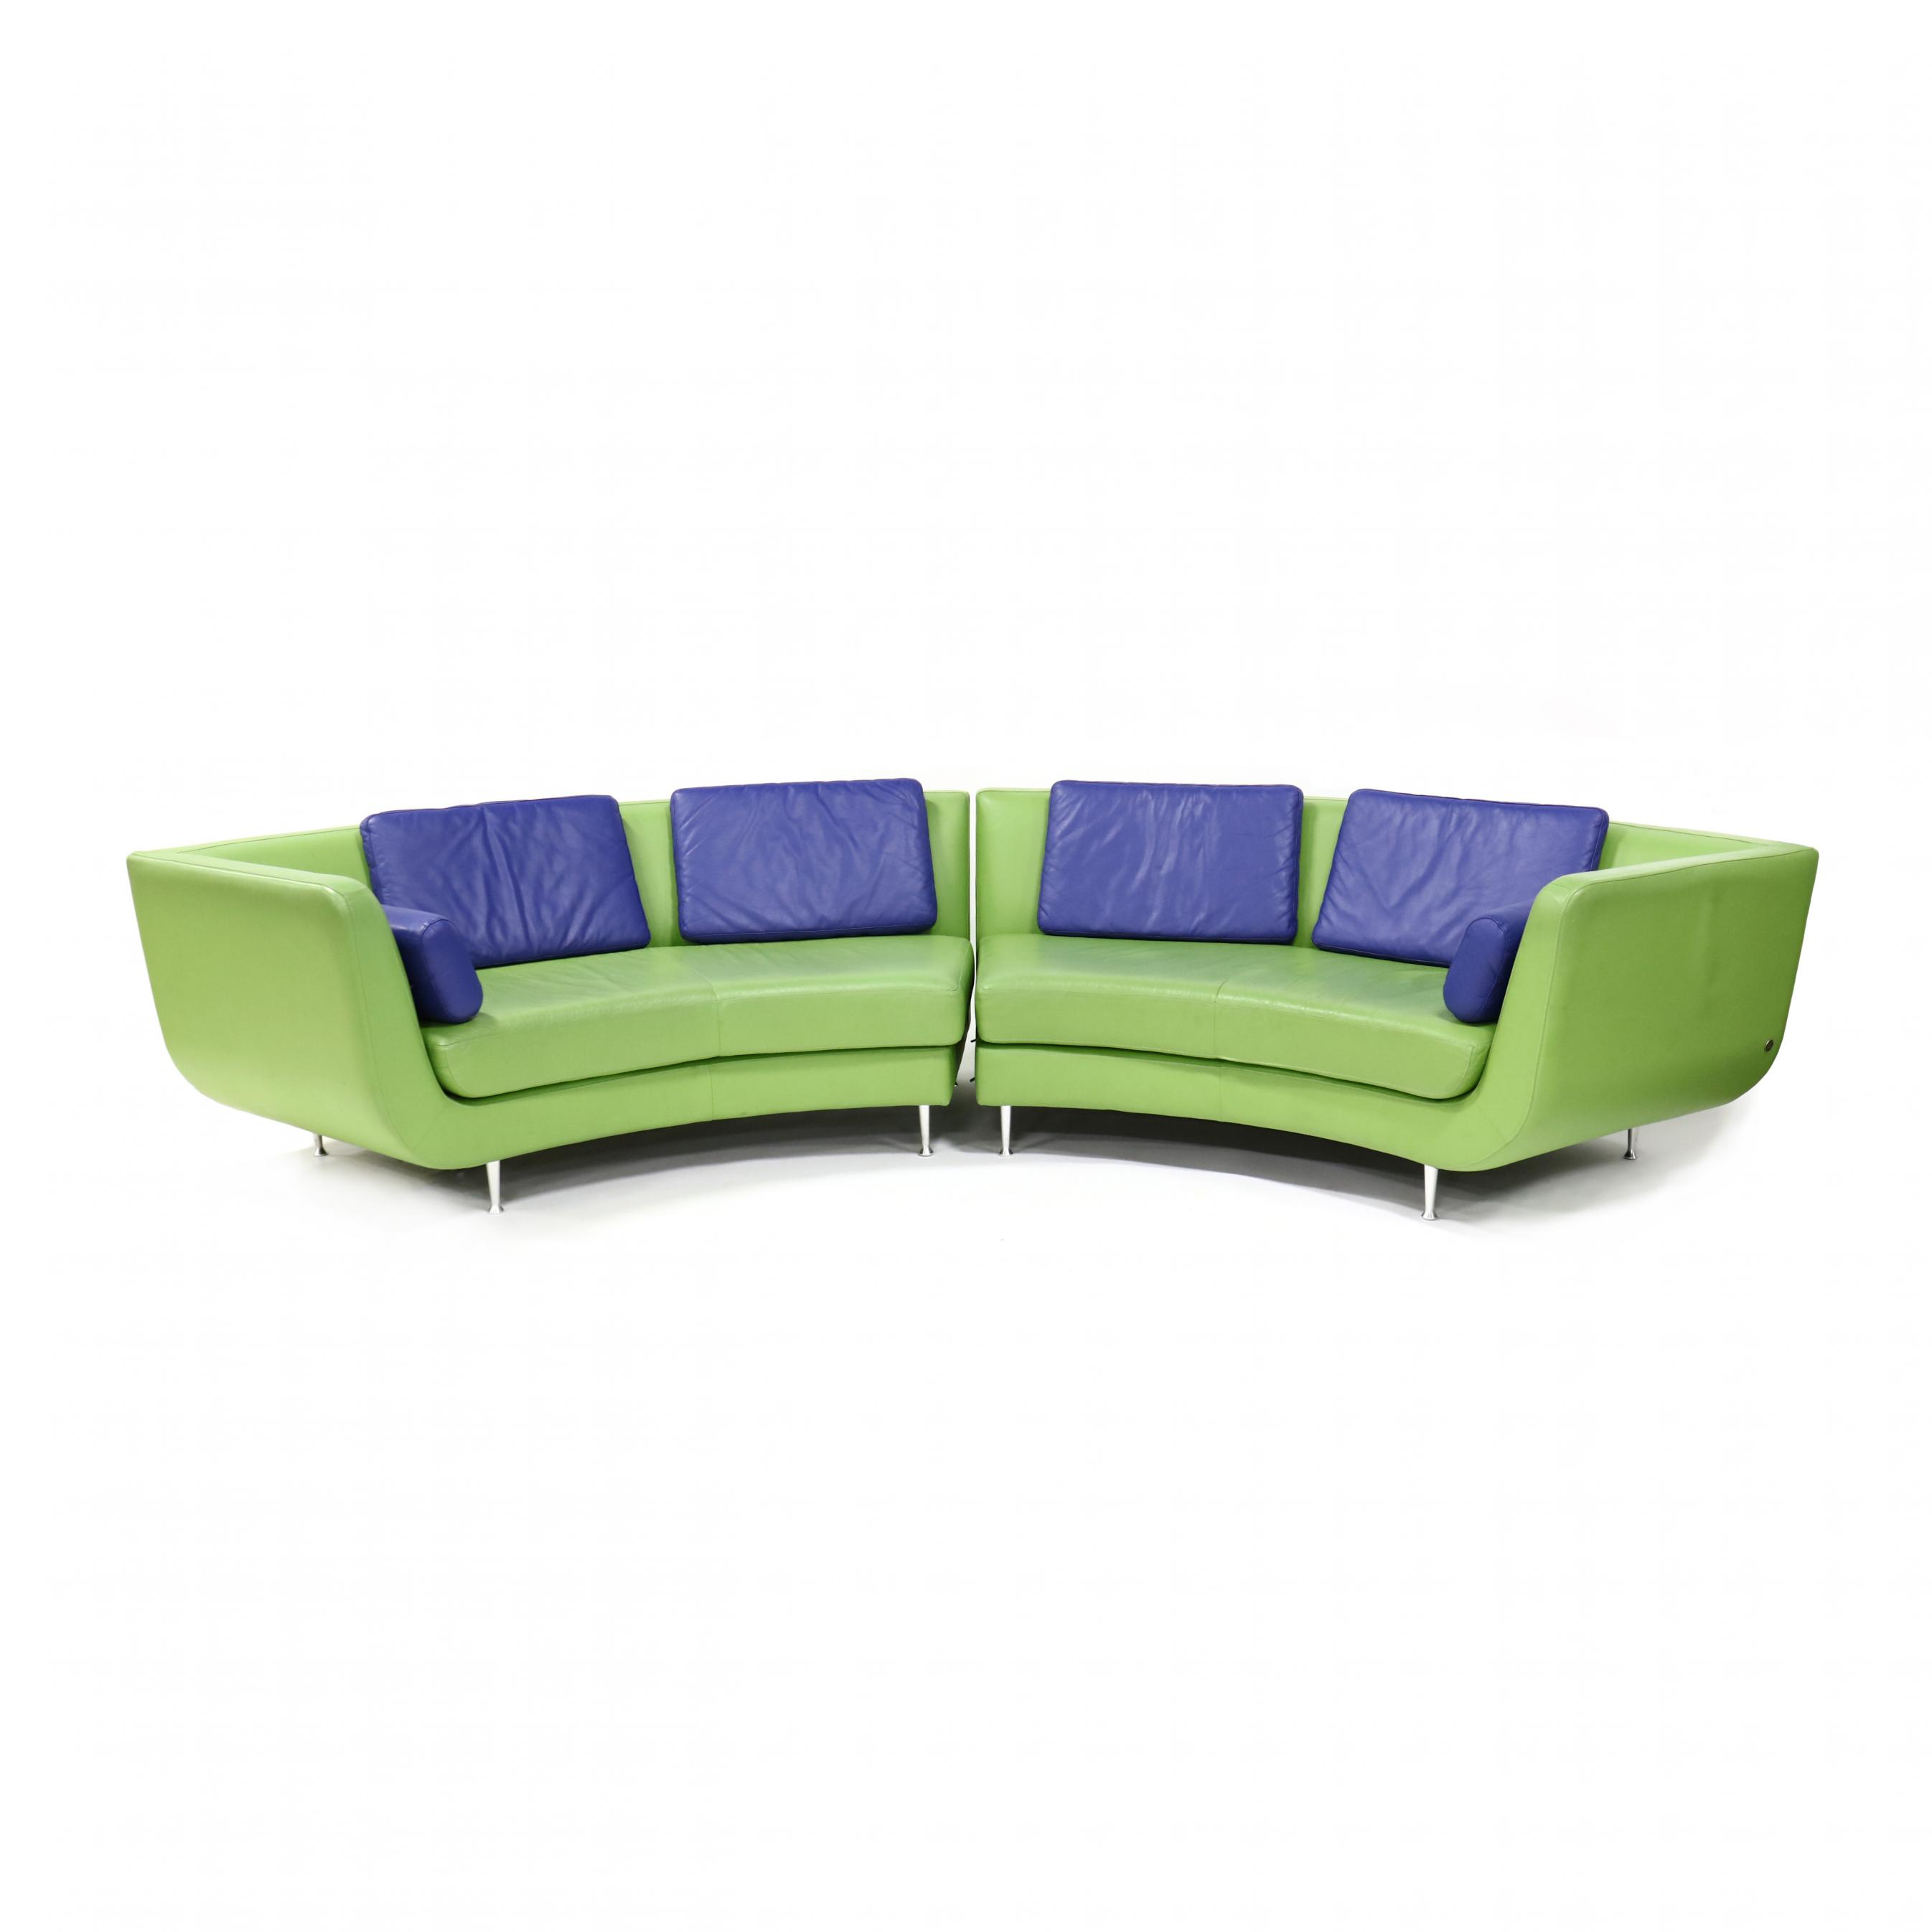 american-leather-menlo-park-sectional-sofa